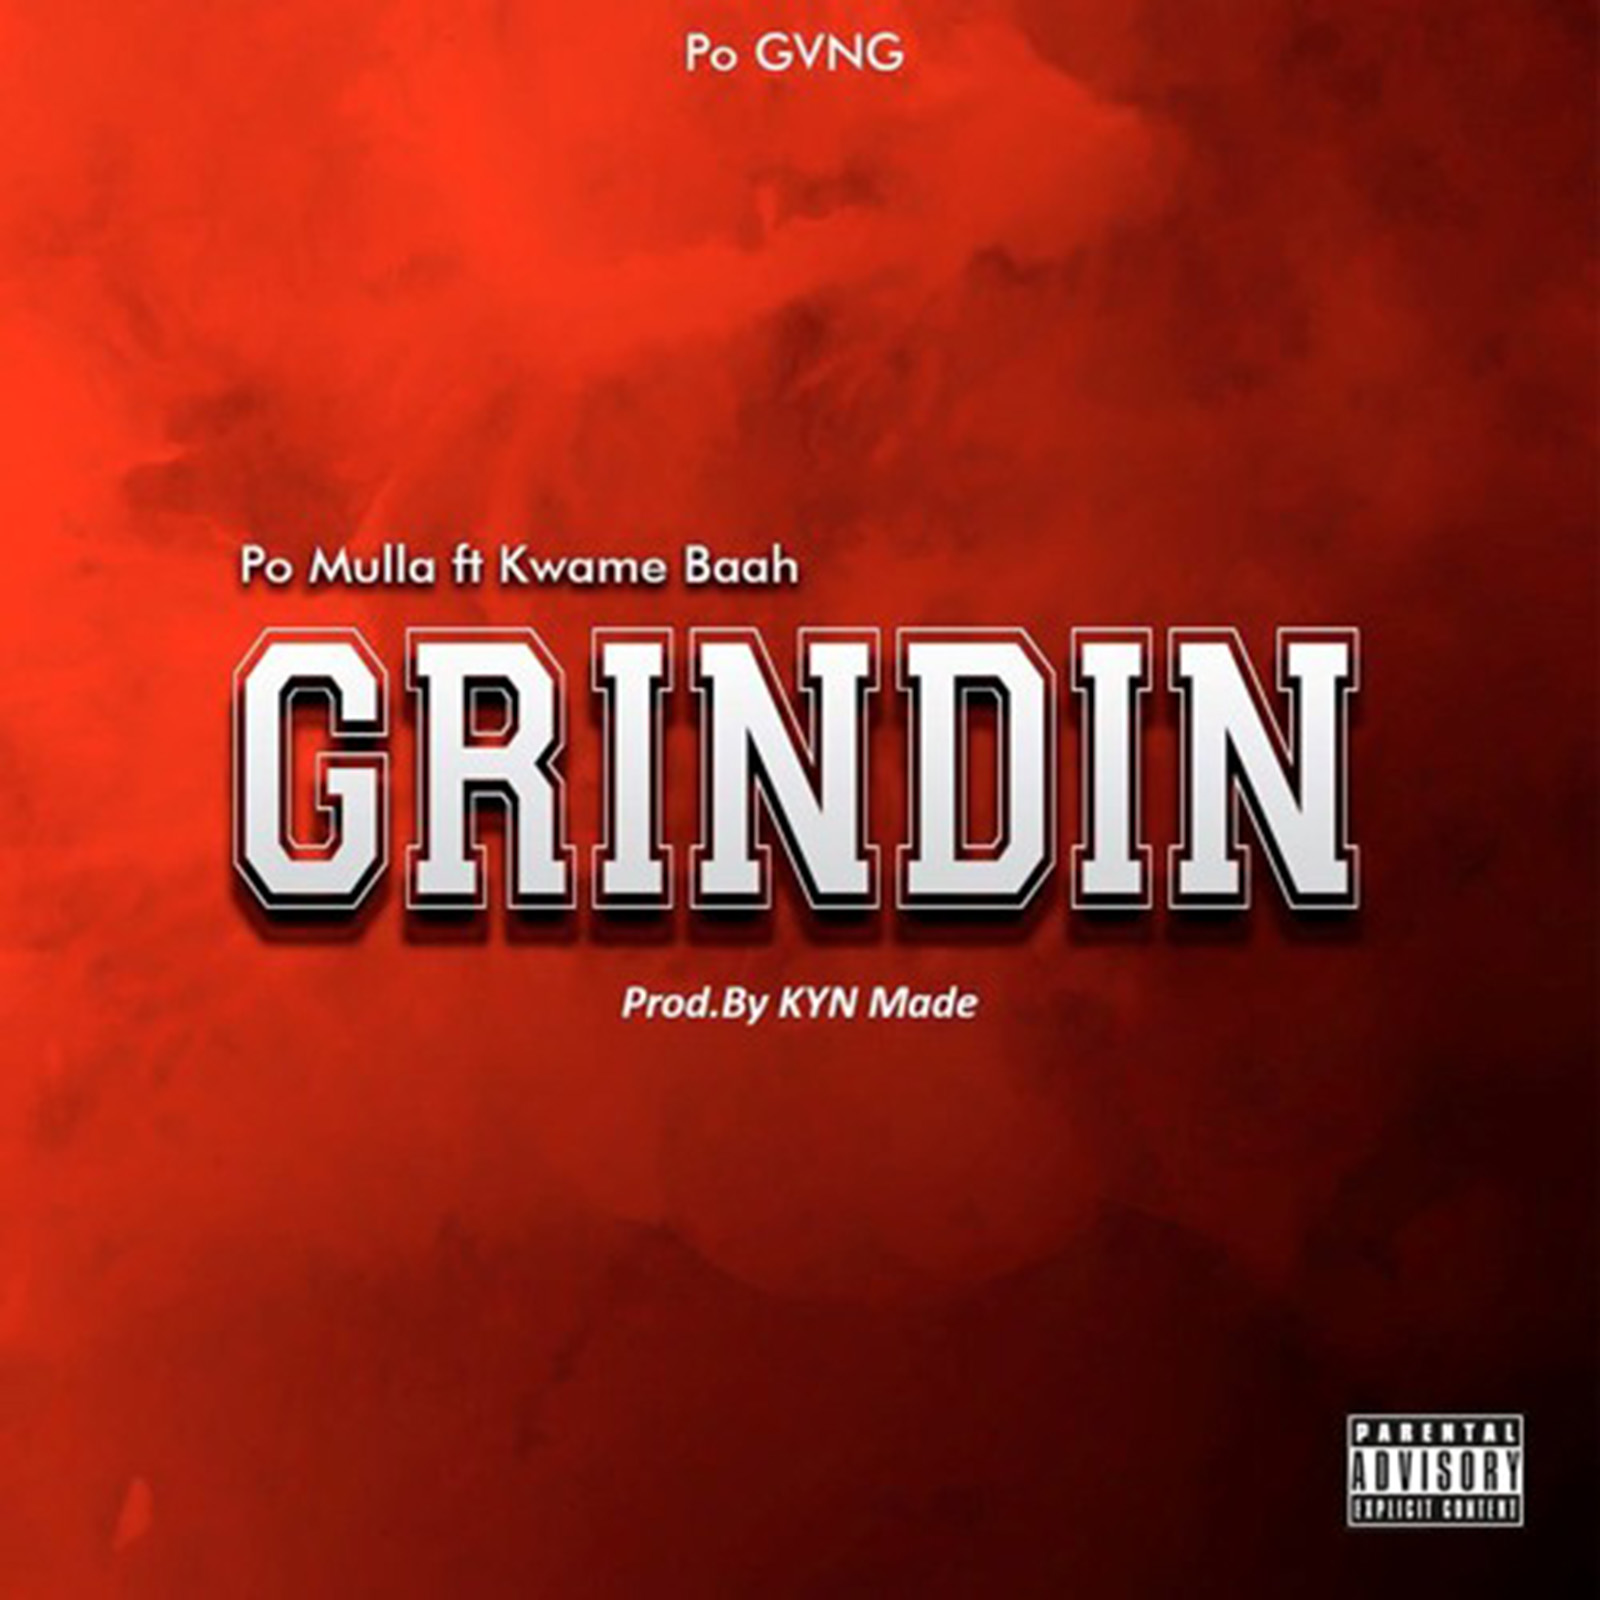 Grinding by Po Mulla feat. Kwame Baah & Kyn Made